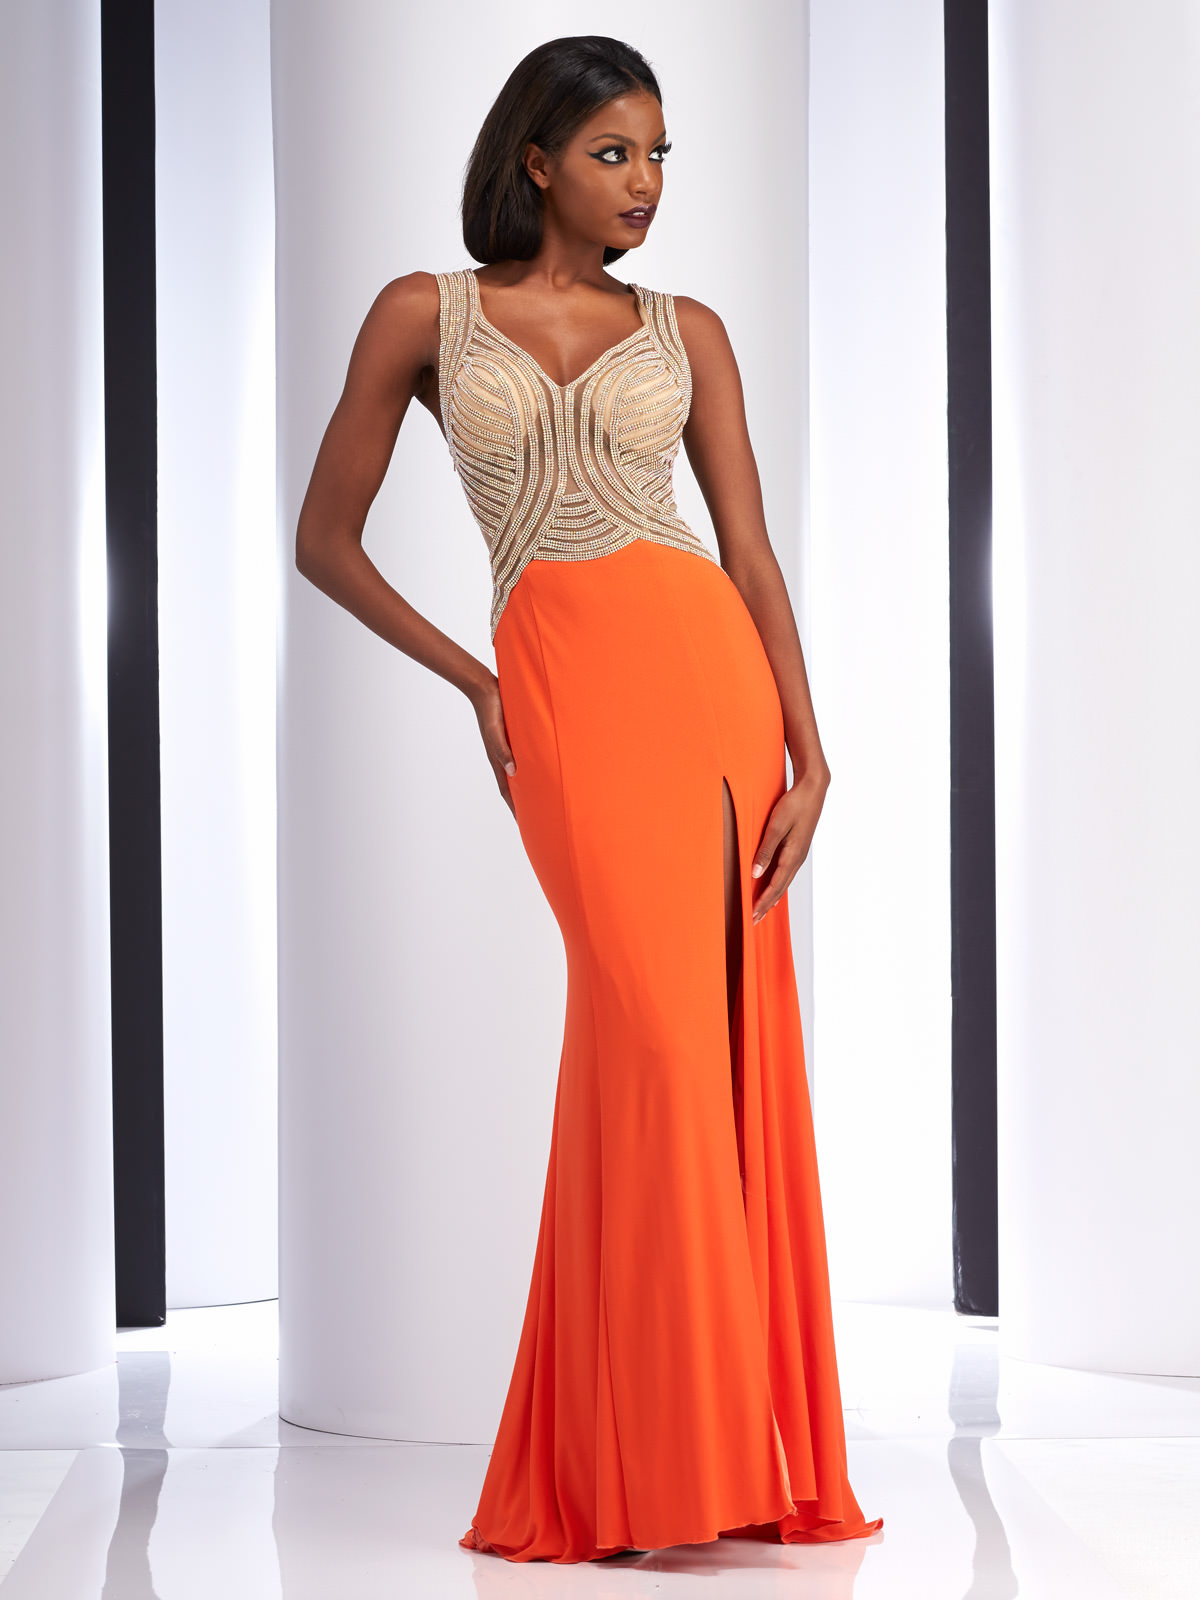 Clarisse 2742 Prom Dress | Promgirl.net